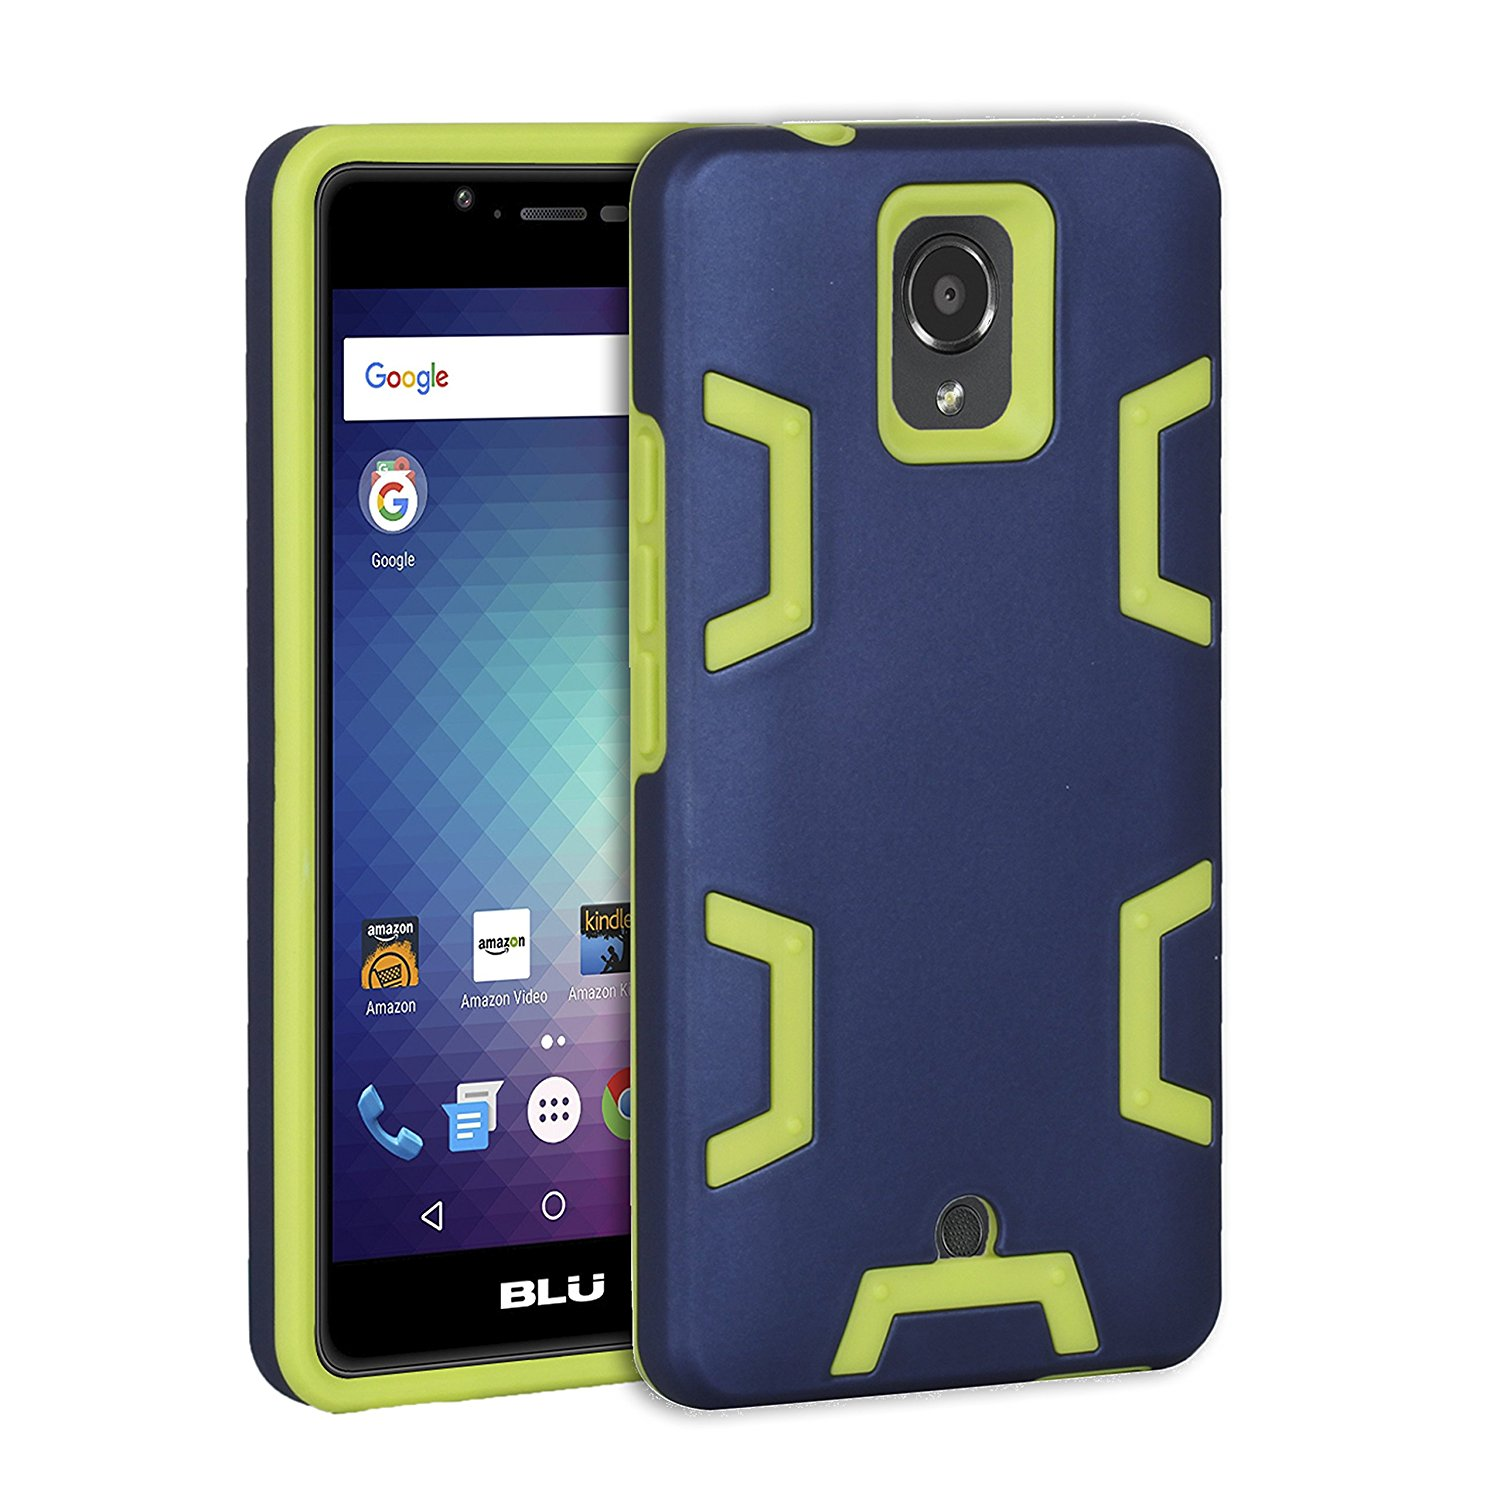 BLU R1 HD Case,Sokad Shockproof Anti-impact Hybrid Hard PC With Soft Rubber Bumper TPU Protective Case Cover for BLU R1 HD-Navy&Yellow